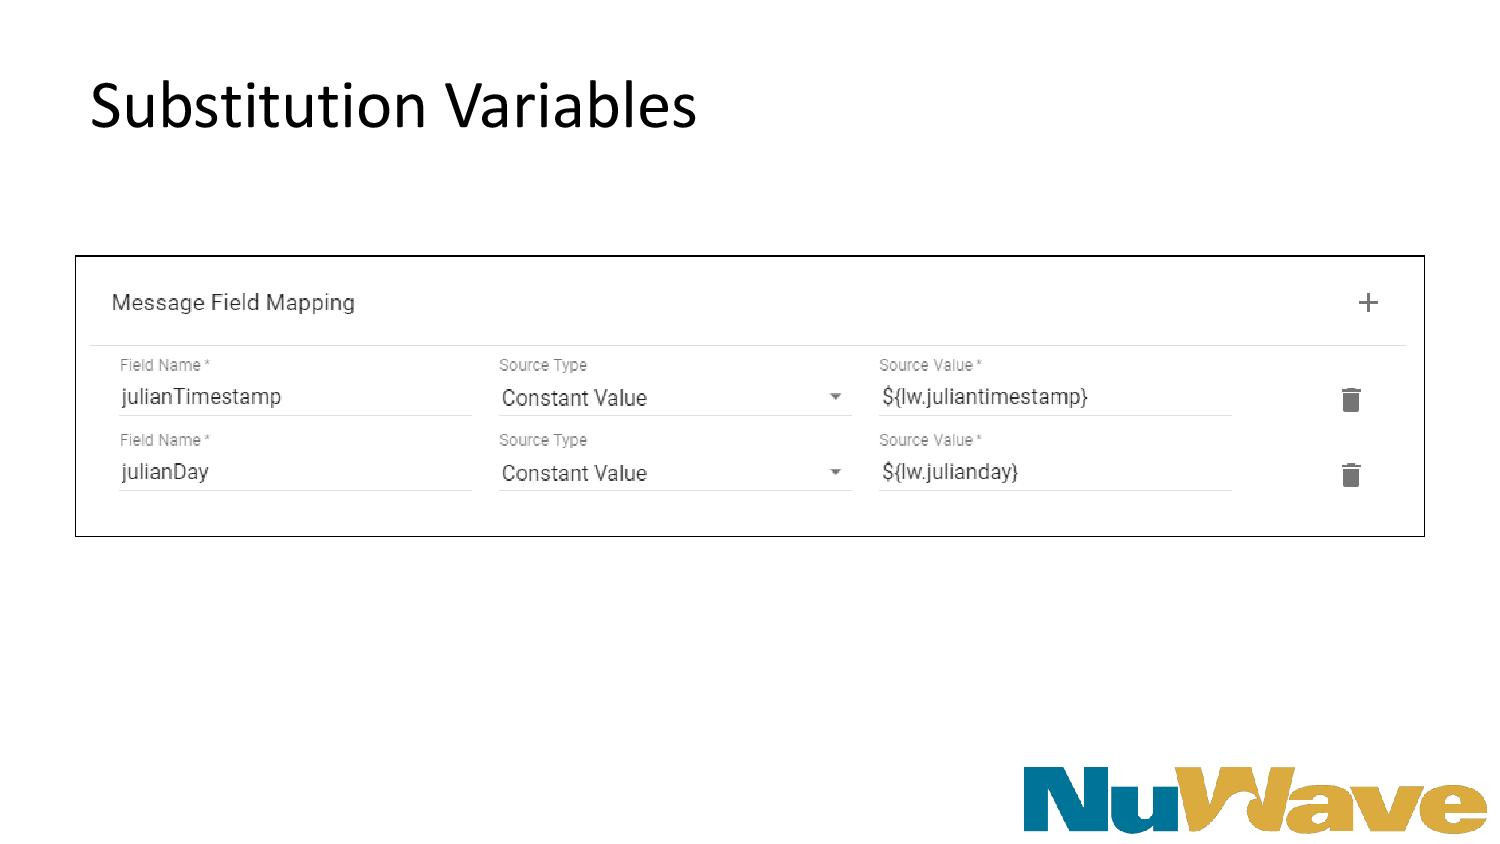 Substitution Variables